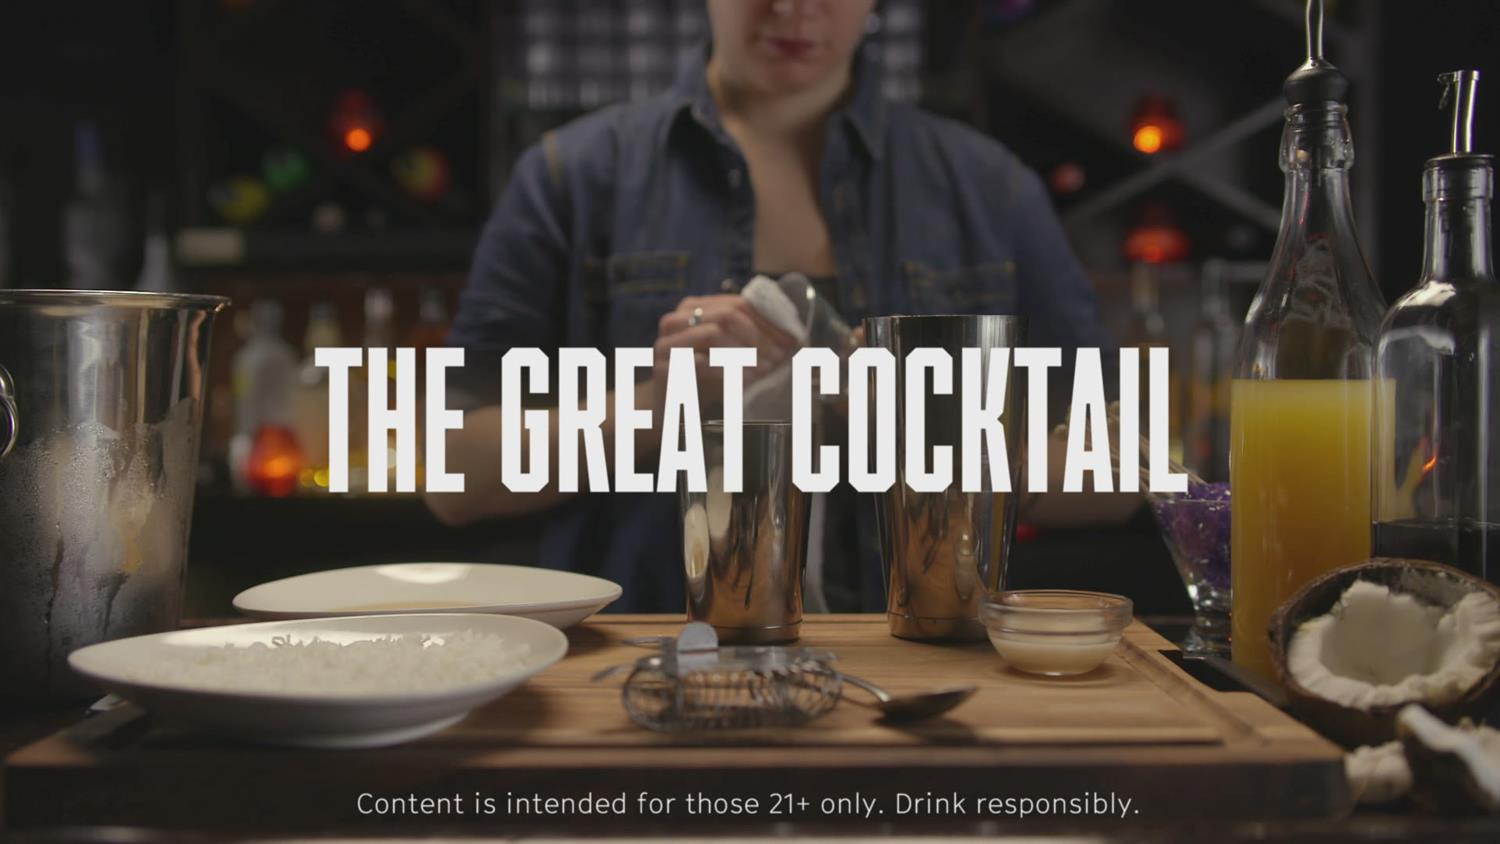 The Great CockTail